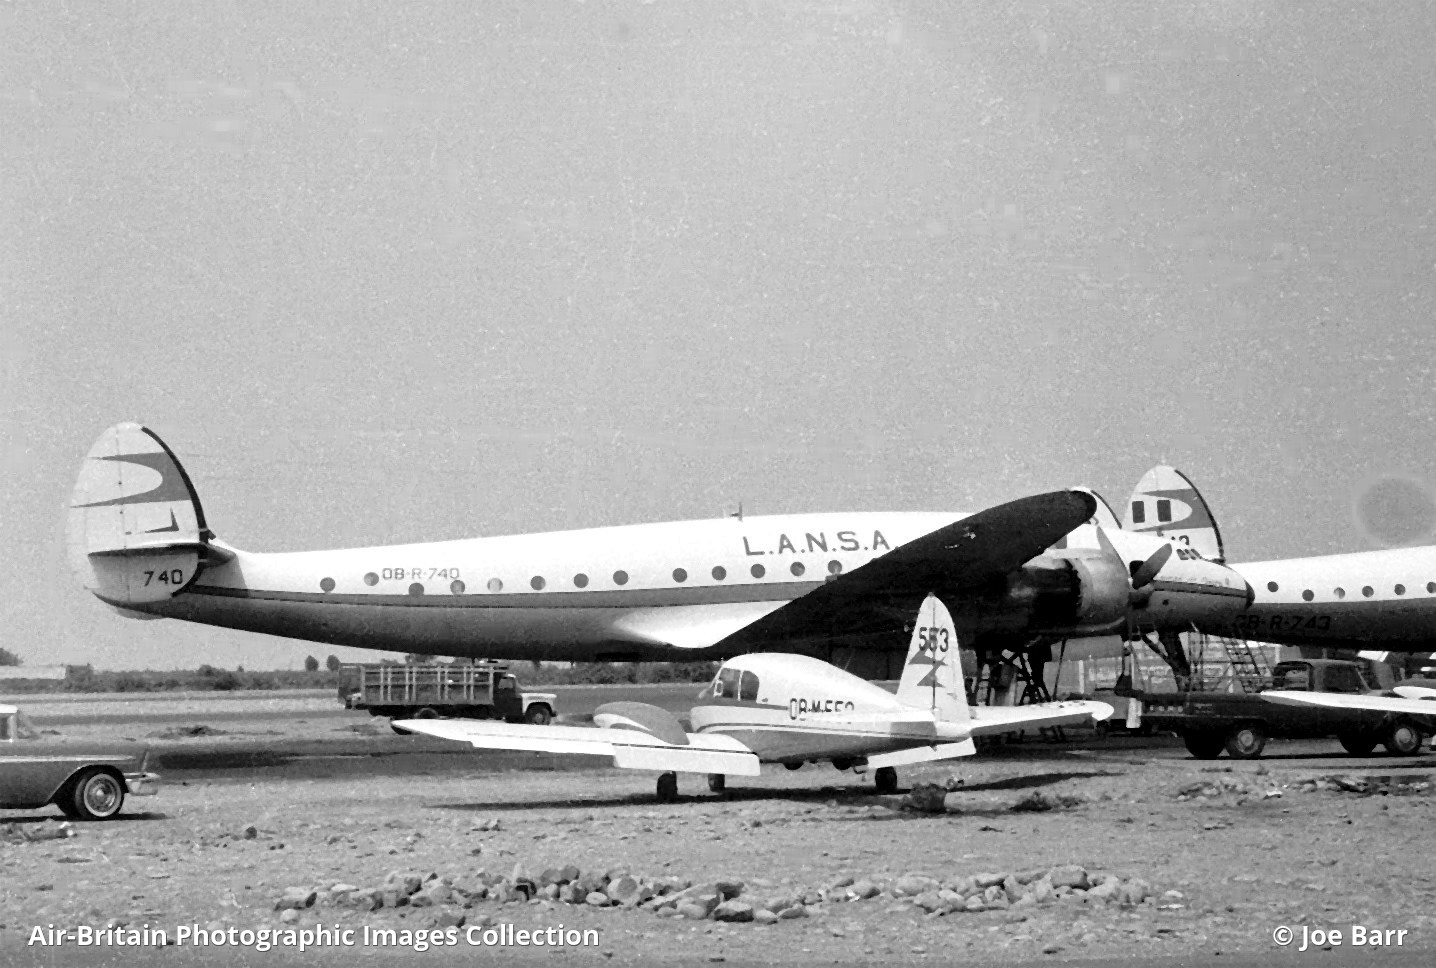 La Nsa Aviation Photographs Of Operator L A N S A Abpic